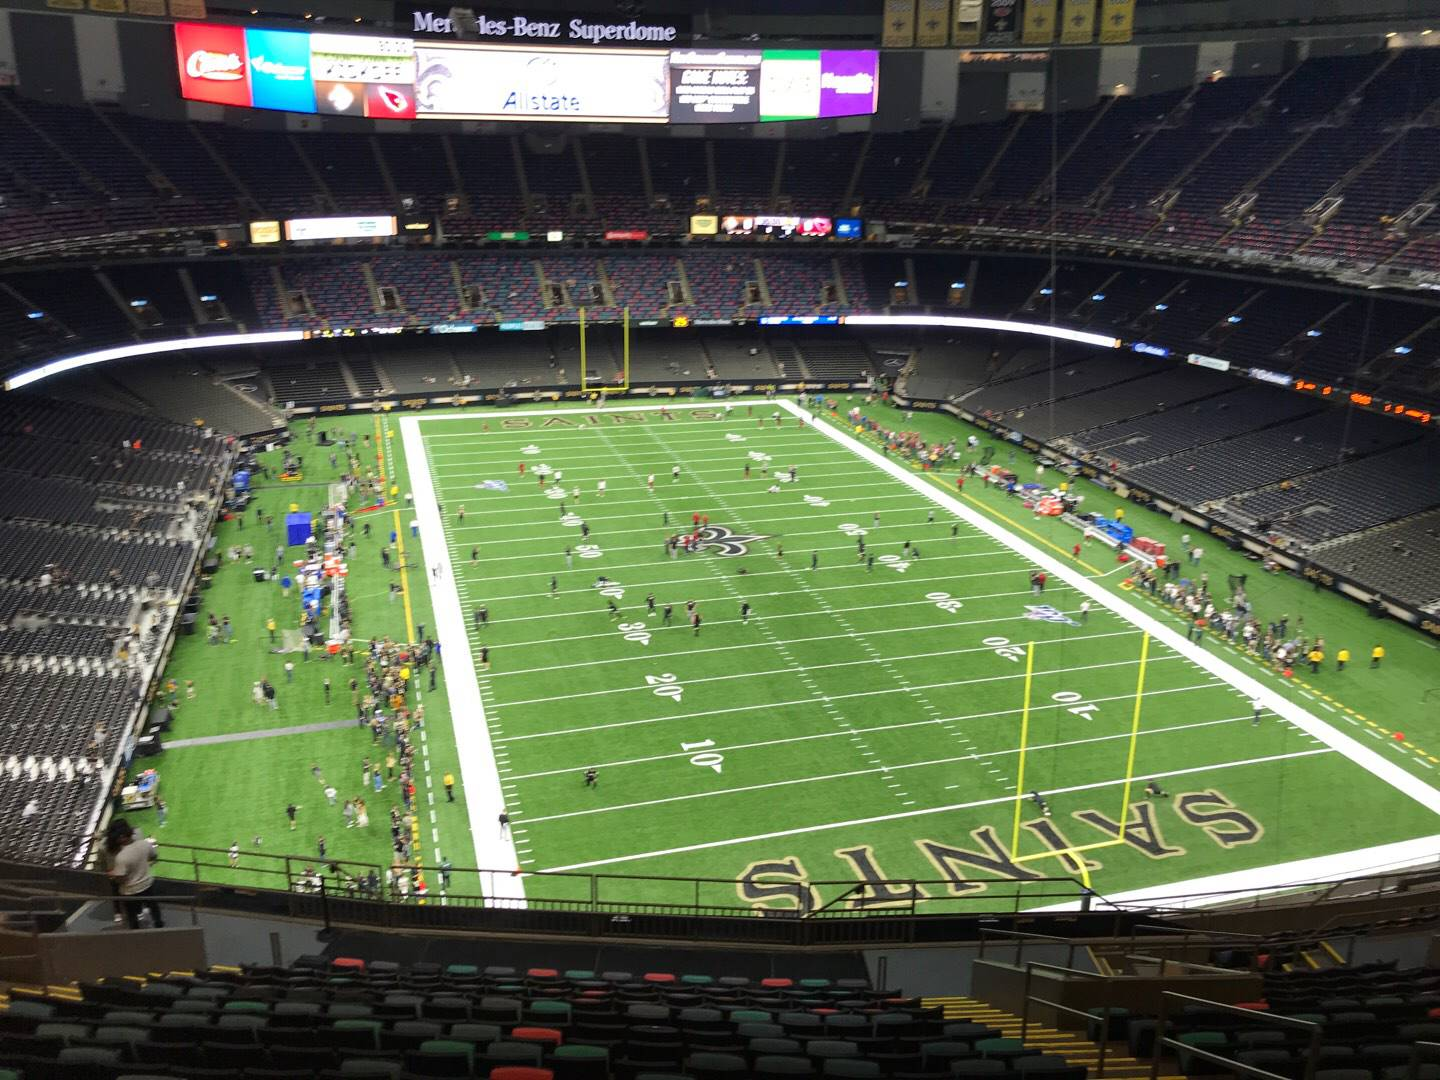 Caesars Superdome Section 630 Row 19 Seat 7